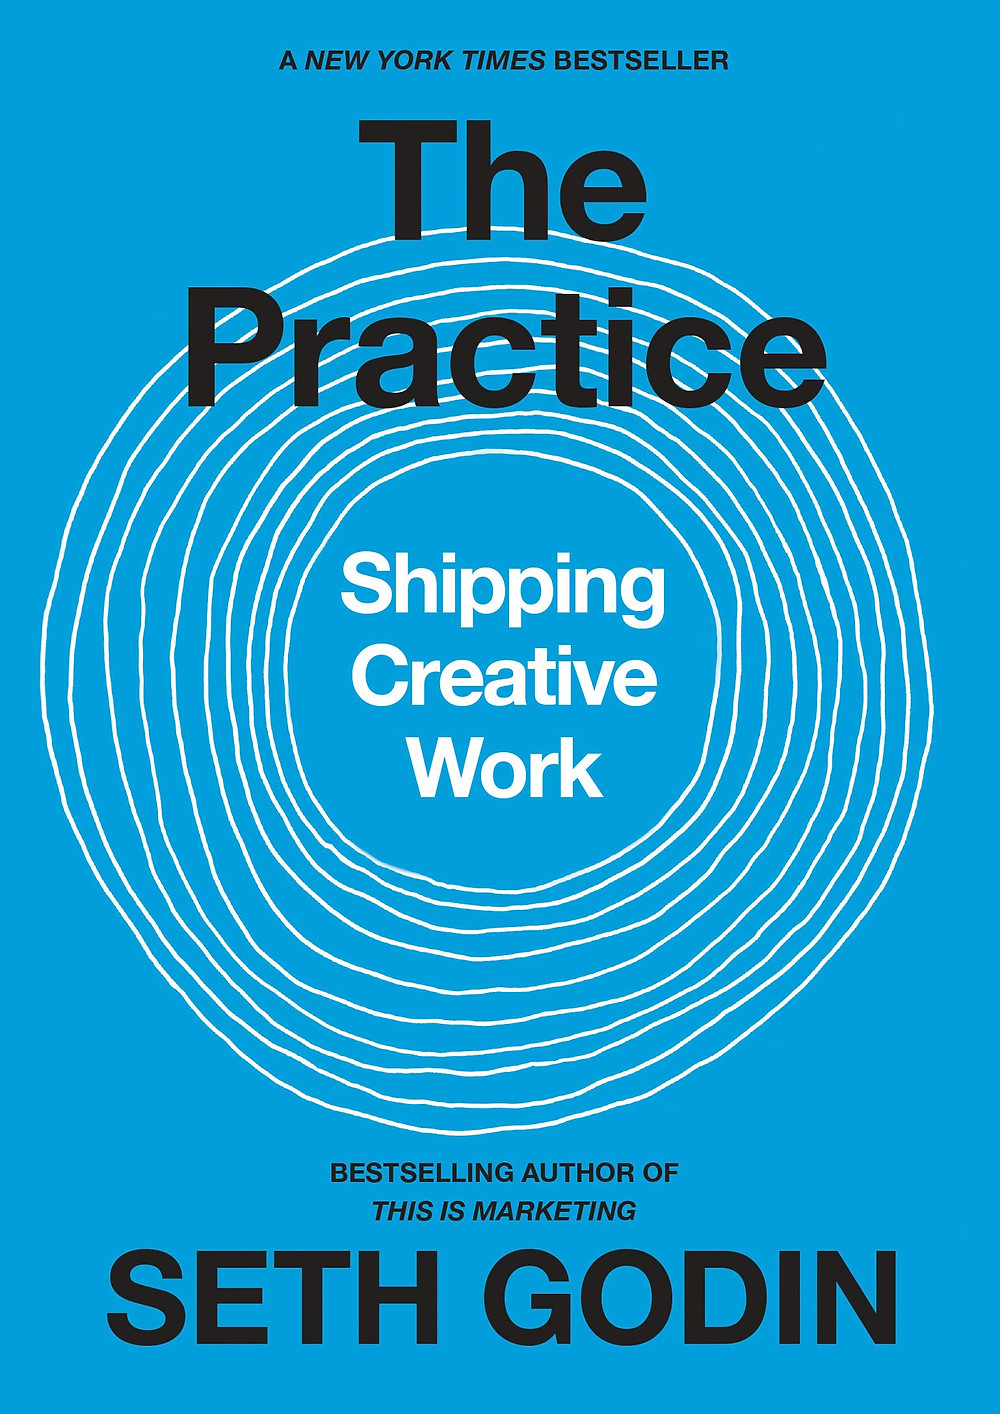 The cover of The Practice by Seth Godin